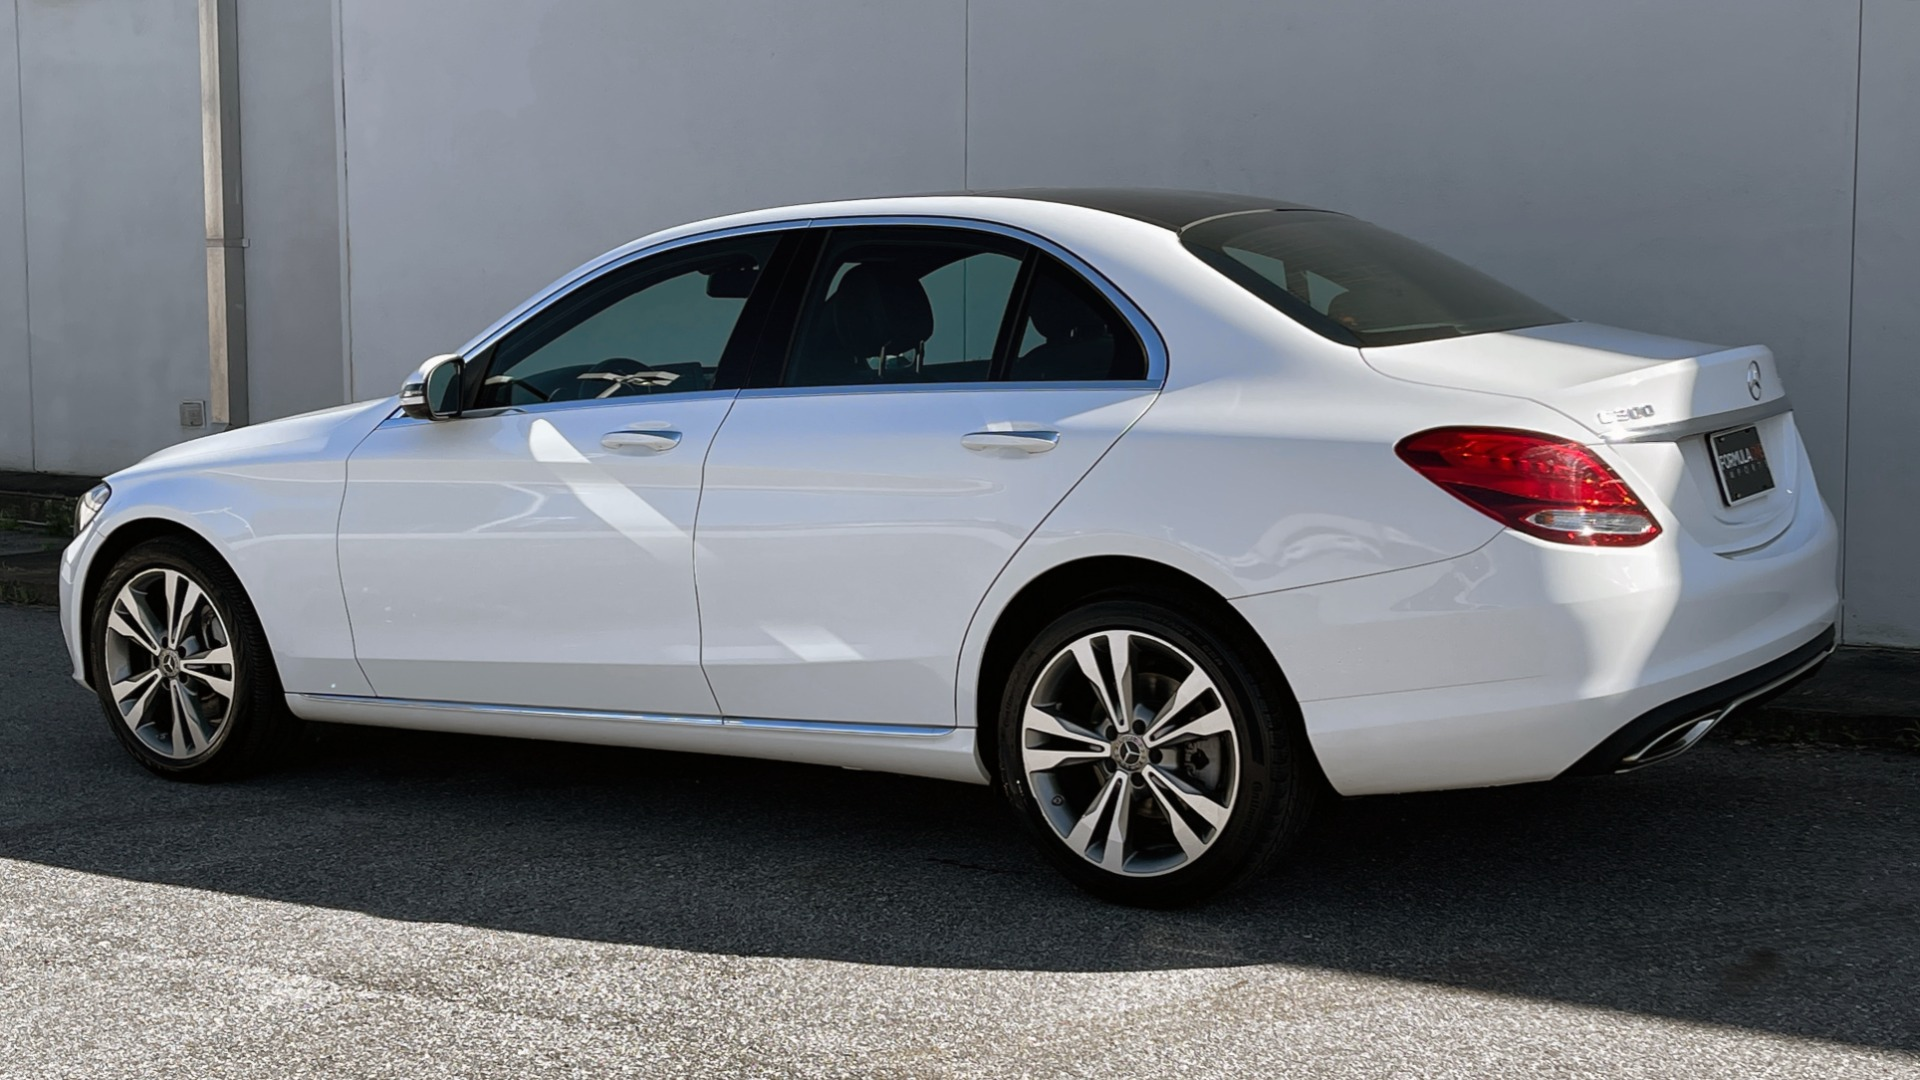 Used 2018 Mercedes-Benz C-CLASS C 300 4MATIC PREMIUM / SMARTPHONE INTEG / PANO-ROOF / REARVIEW for sale $30,995 at Formula Imports in Charlotte NC 28227 4